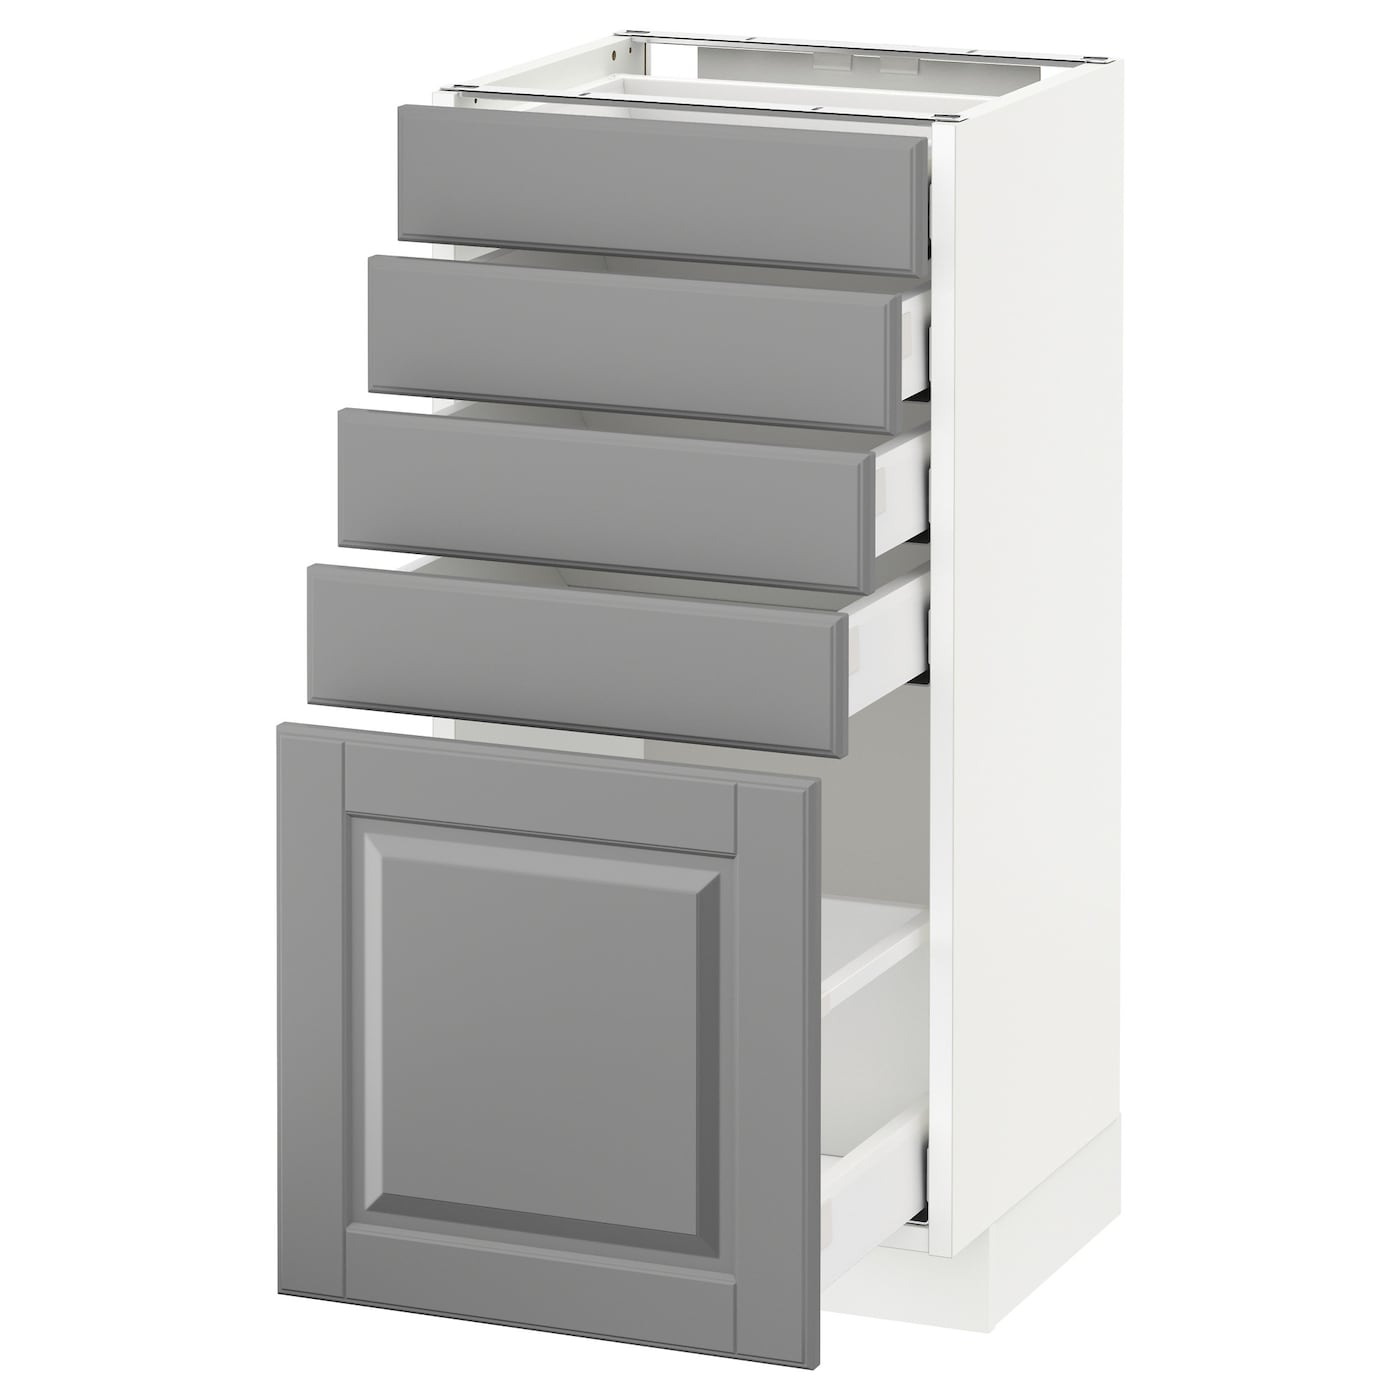 metod maximera base cabinet with 5 drawers white bodbyn grey 40 x 37 cm ikea. Black Bedroom Furniture Sets. Home Design Ideas